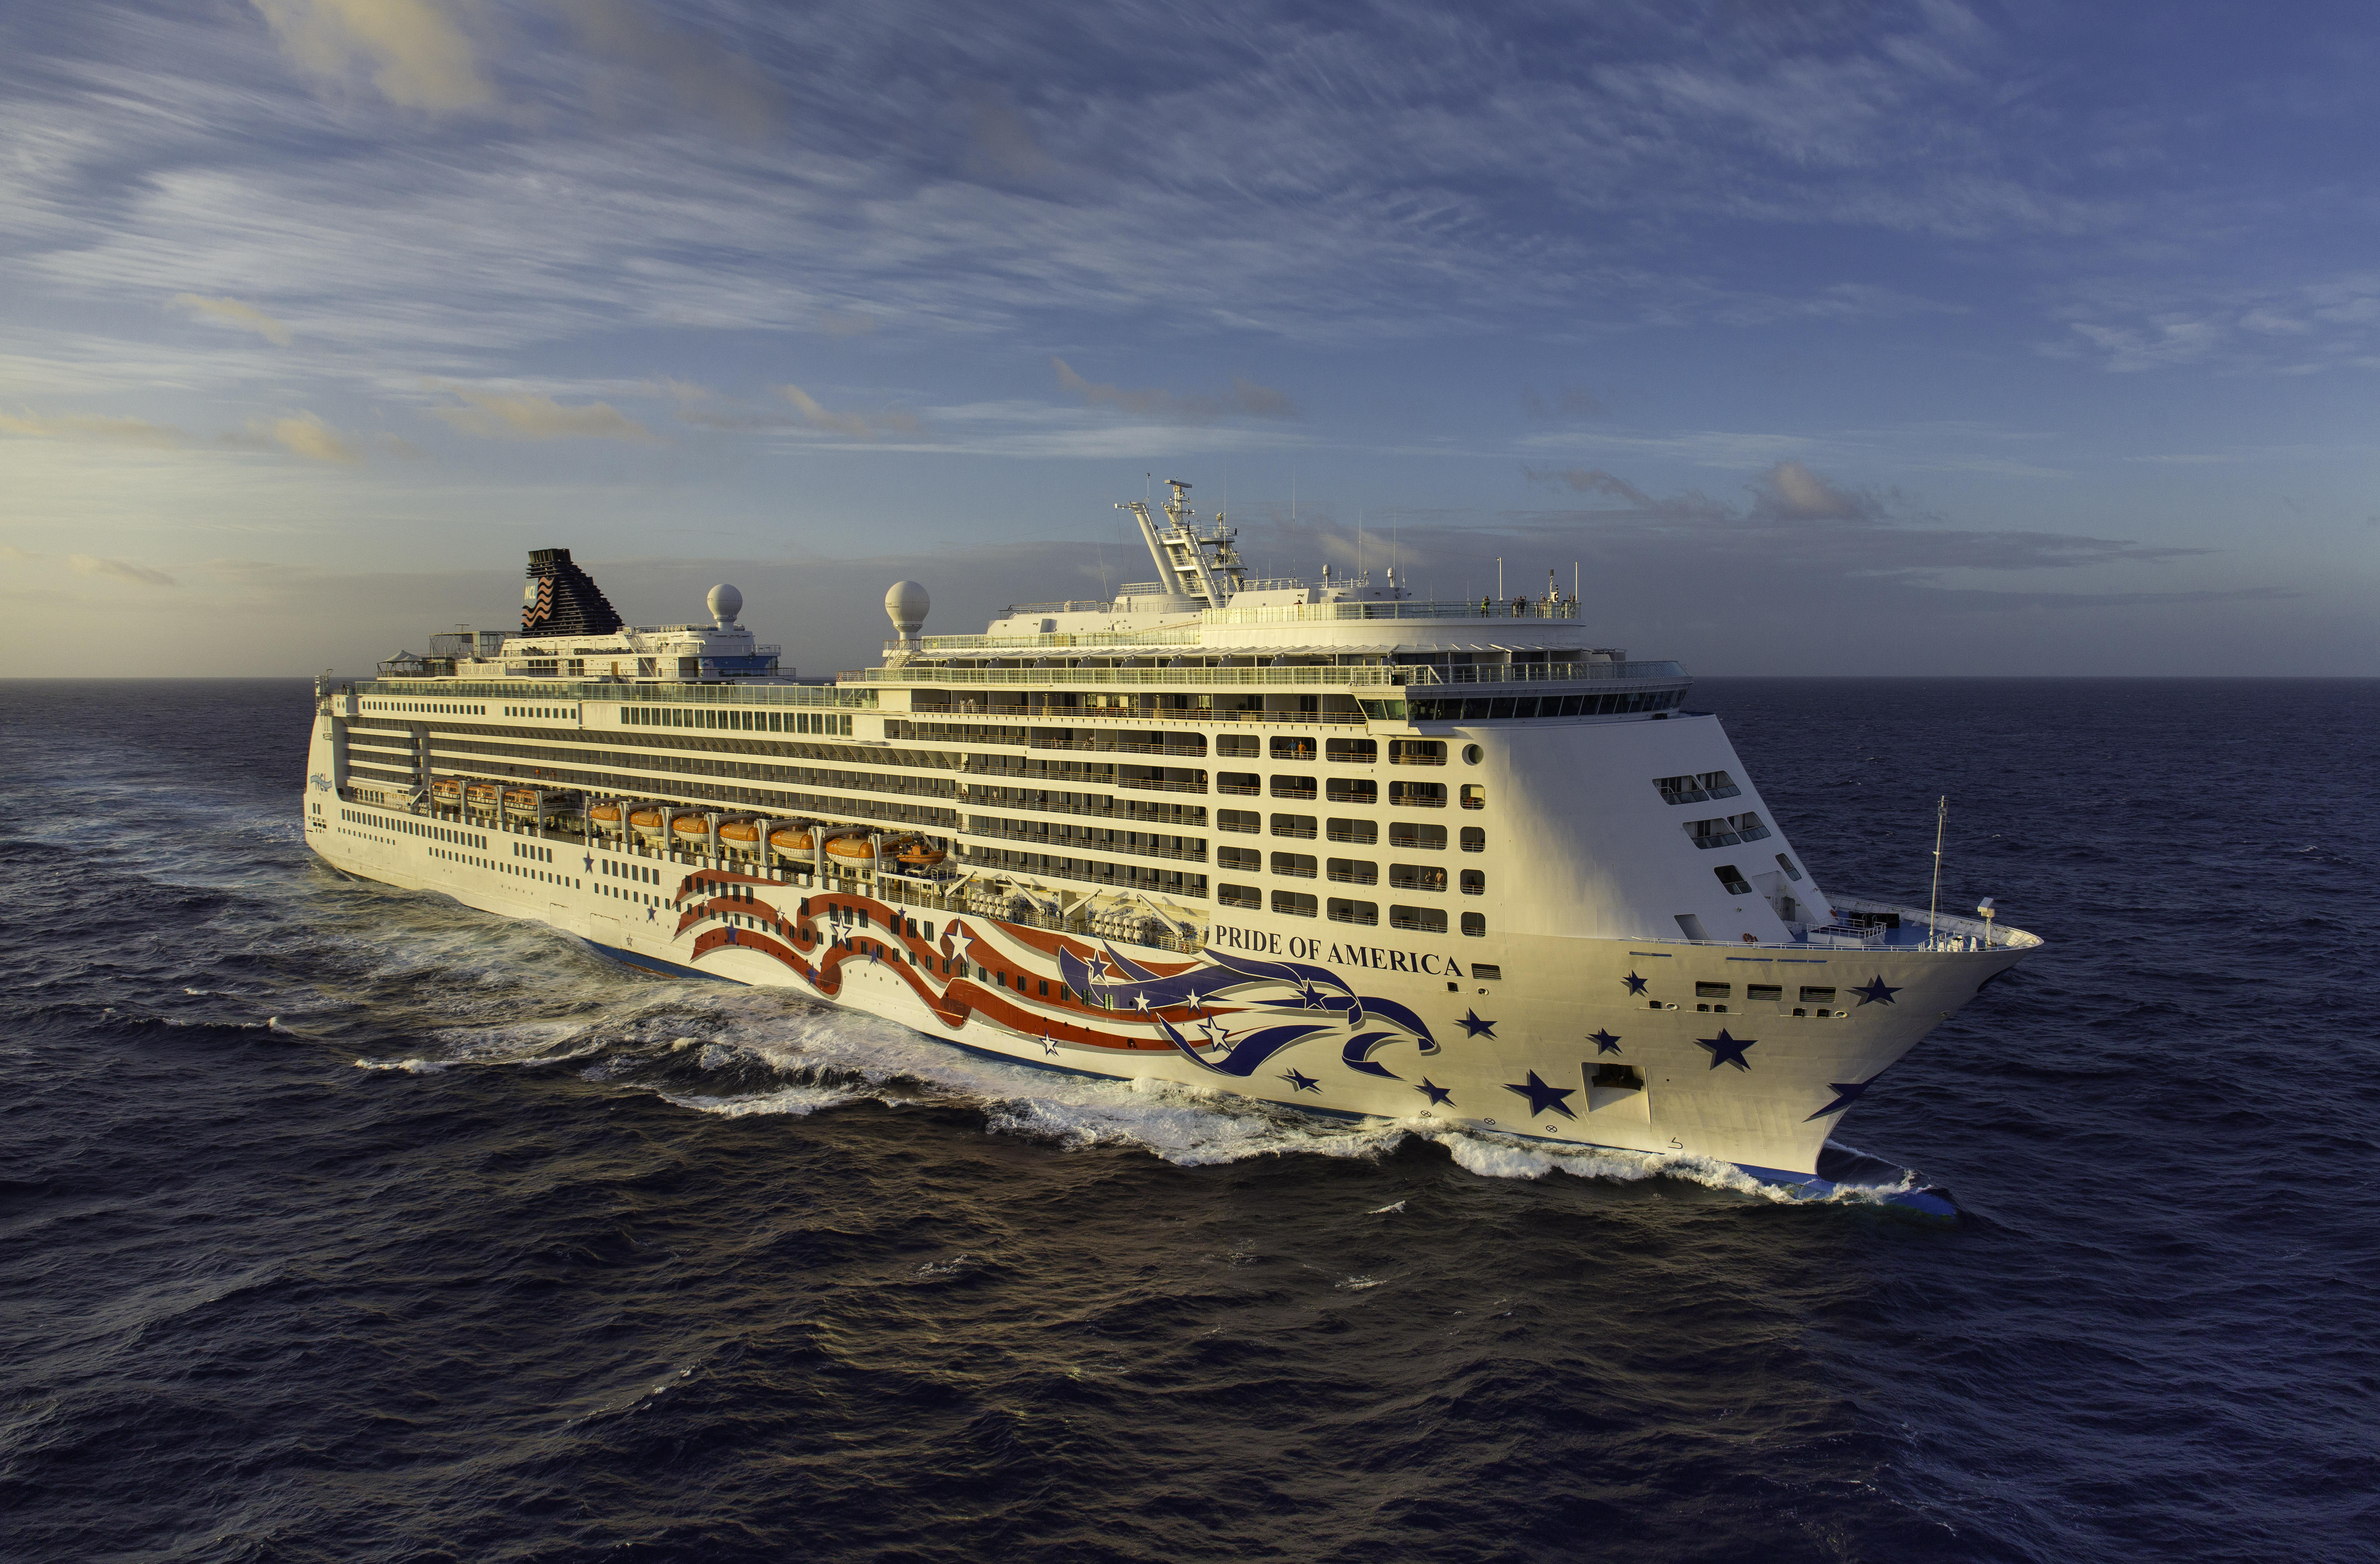 Norwegian NCL Pride Of America Cruise Ship Reviews UPDATED - Cruise ship in rough waters